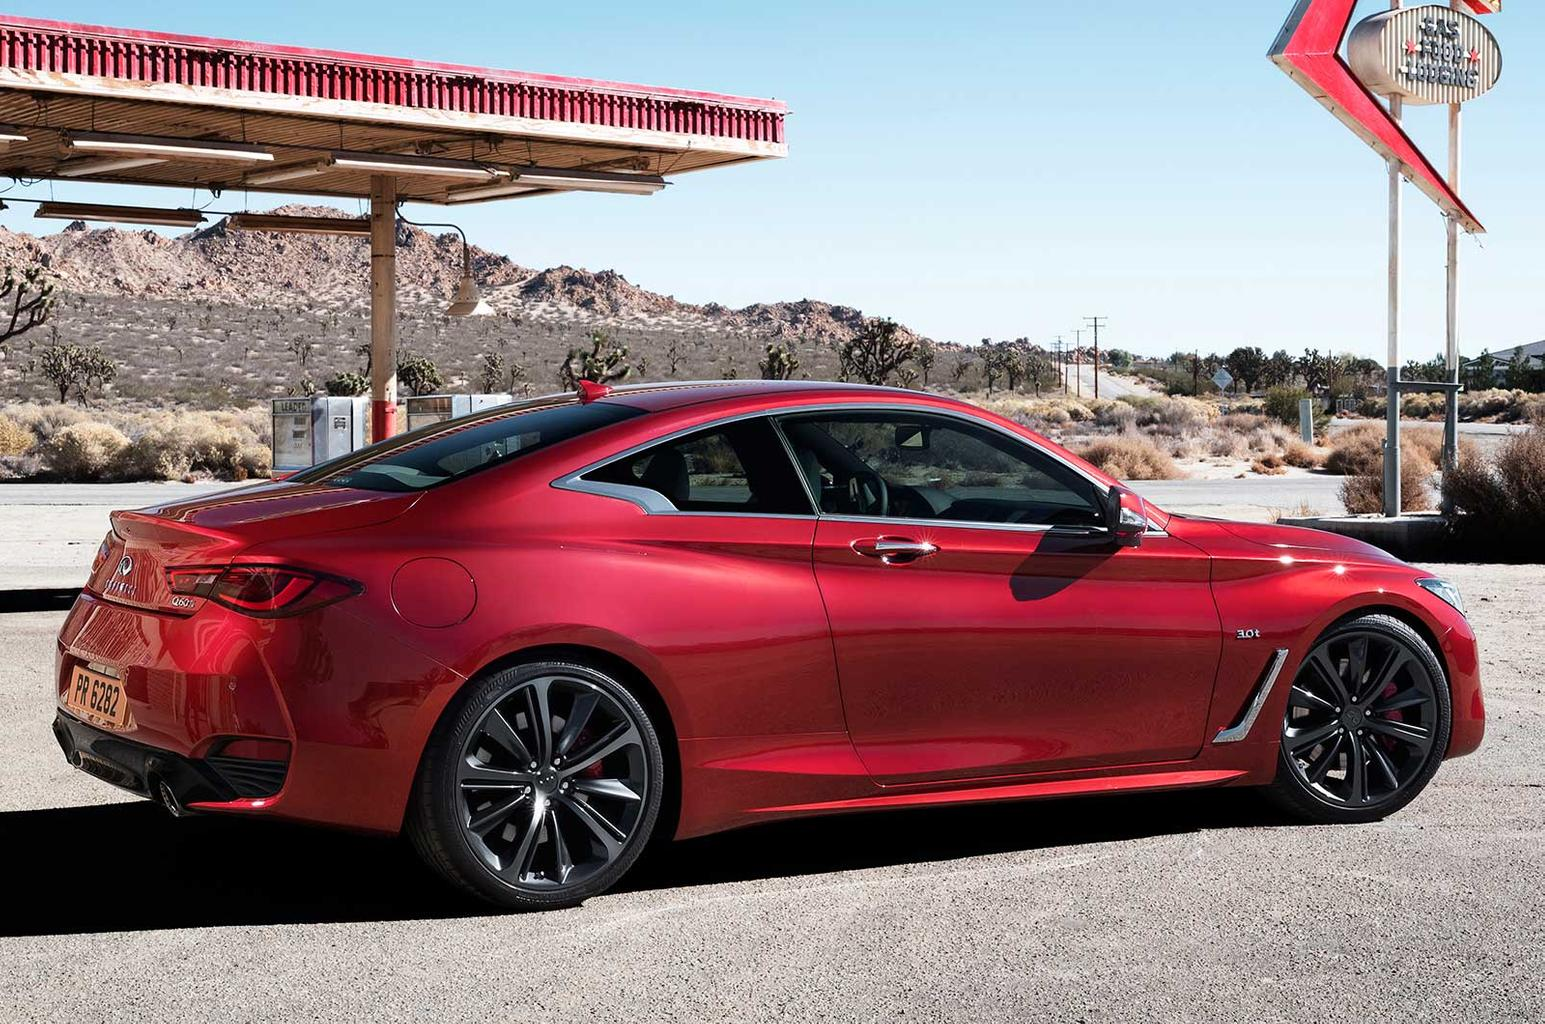 2016 Infiniti Q60 to be priced from £33,990